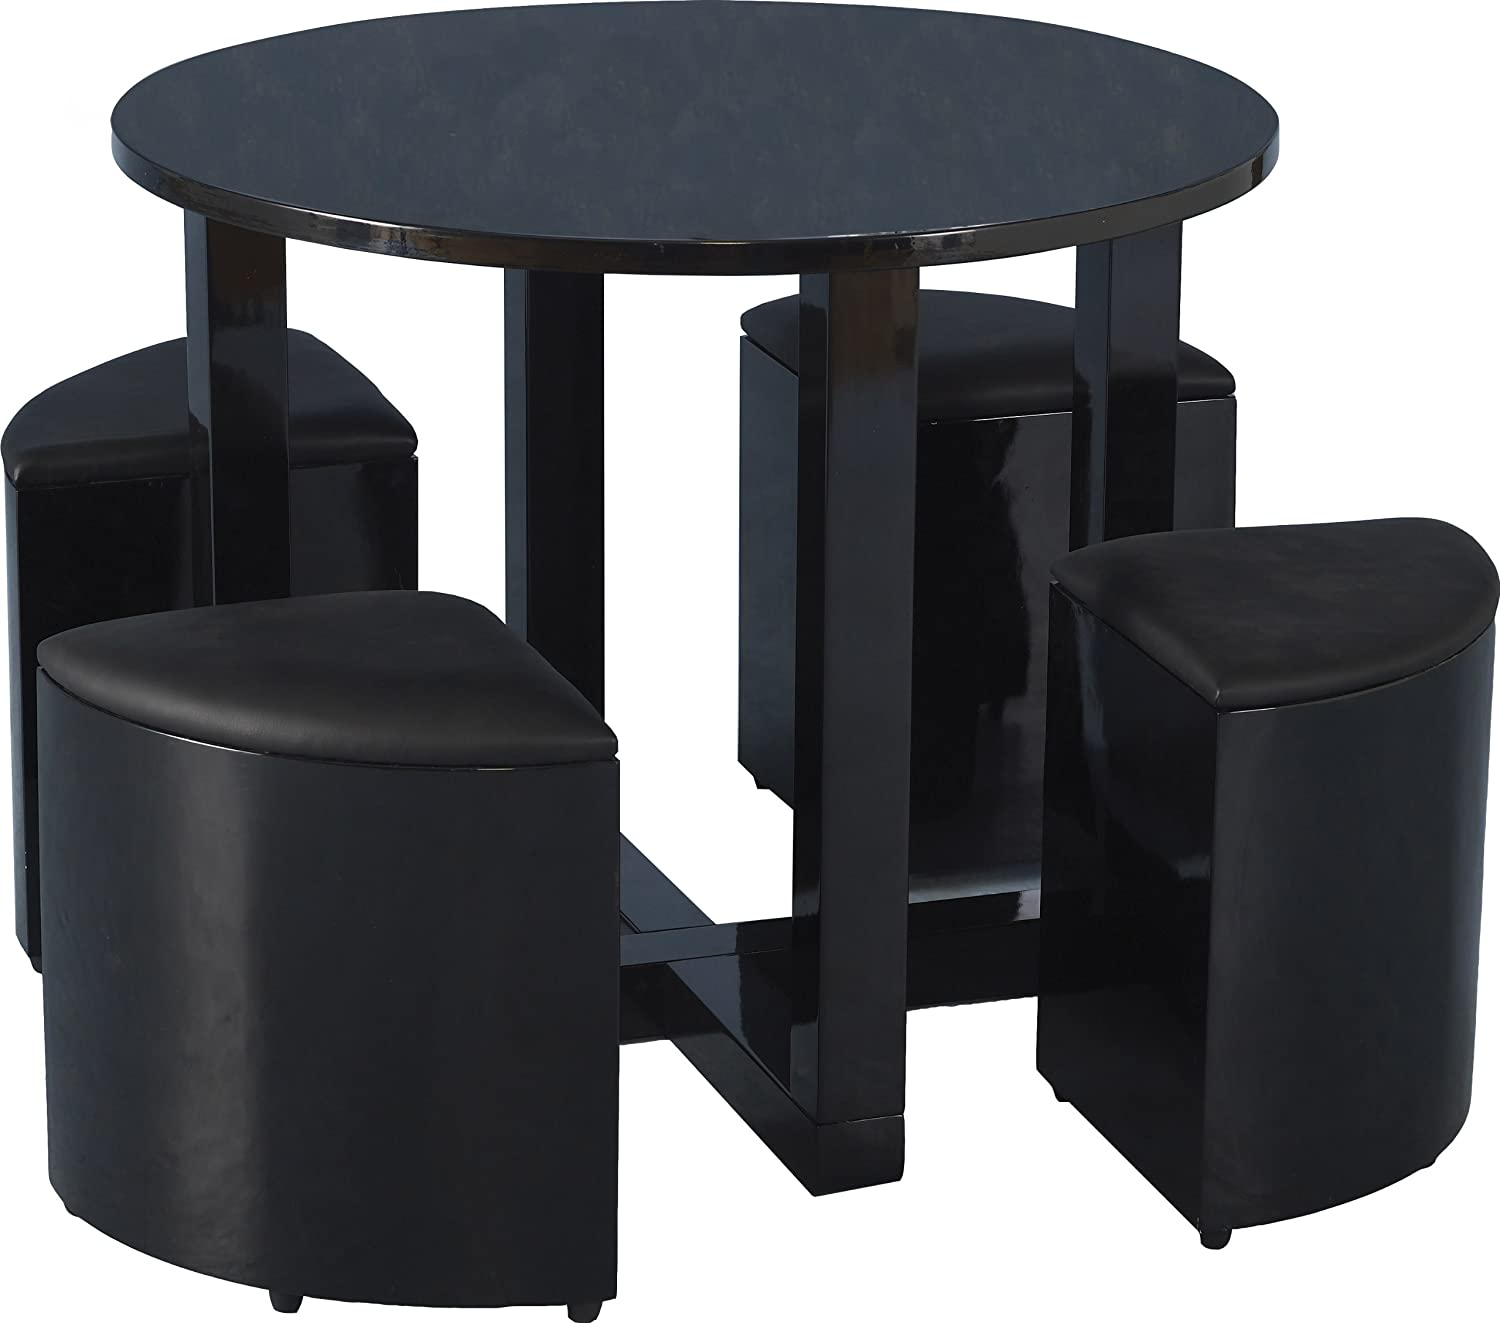 Seconique Charisma Stowaway 90cm Black Gloss Dining Table and 4 Stools Set Amazon.co.uk Kitchen u0026 Home  sc 1 st  Amazon UK & Seconique Charisma Stowaway 90cm Black Gloss Dining Table and 4 ... islam-shia.org